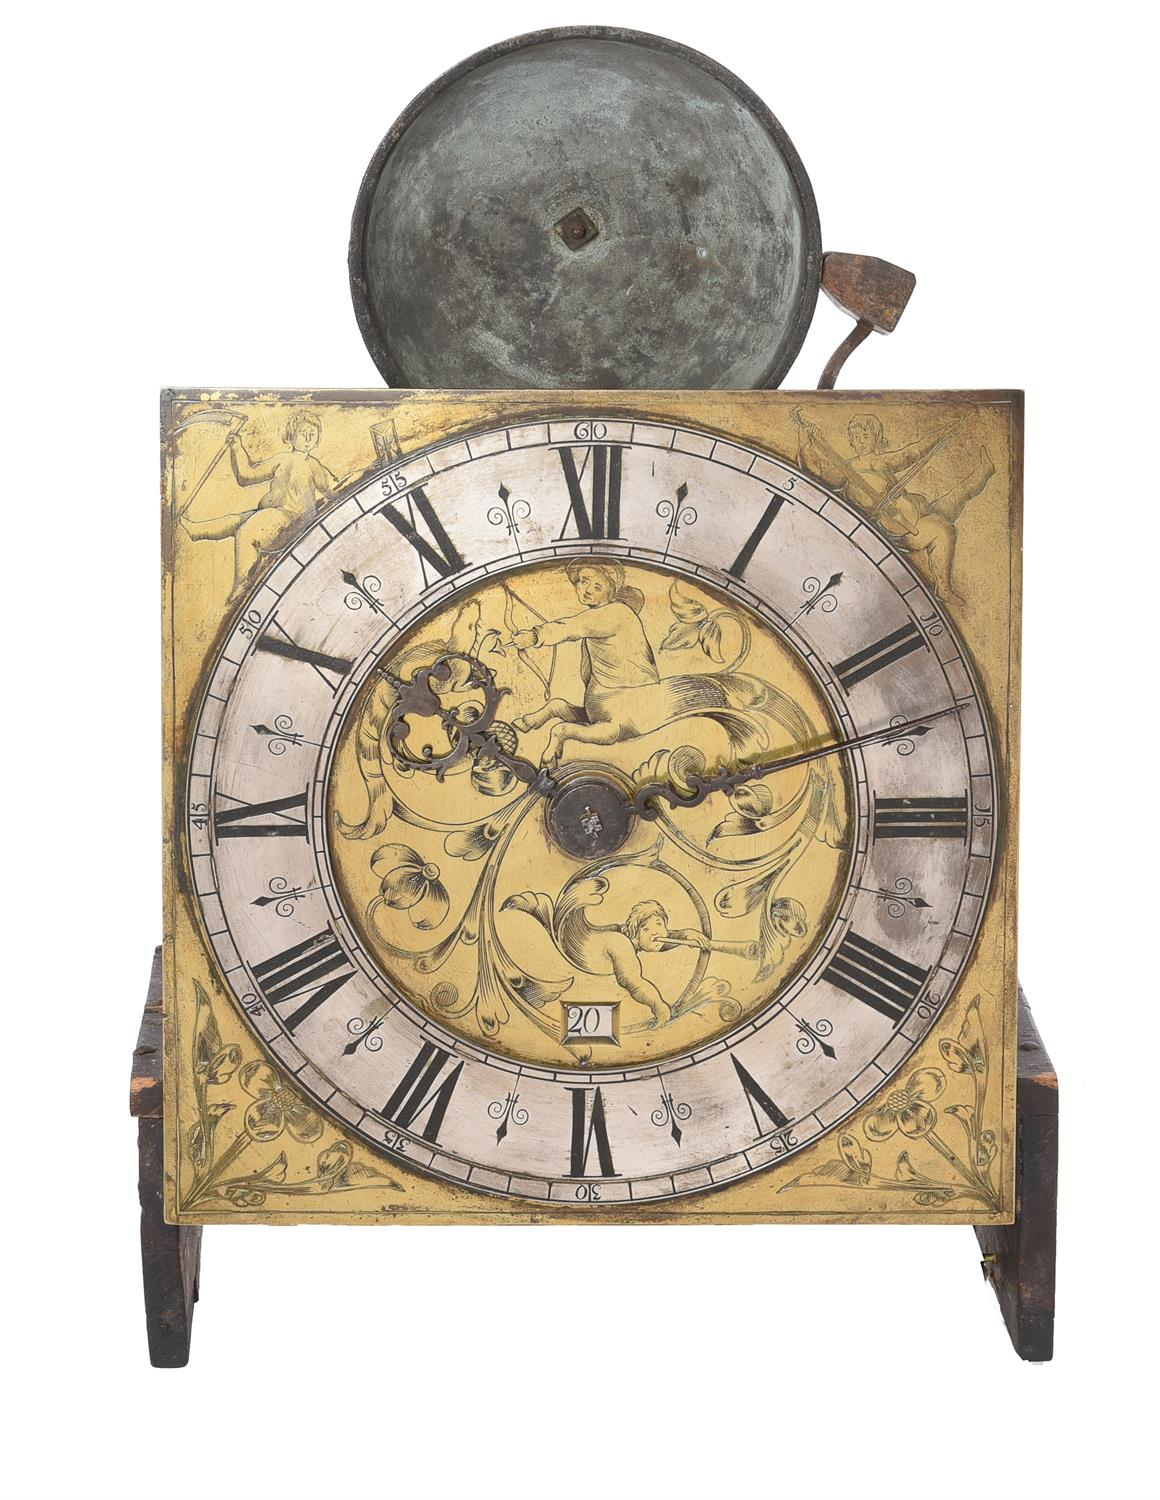 A fine Charles II ebonised thirty-hour longcase clock with unusual figural engraved 10 inch dial - Image 3 of 6